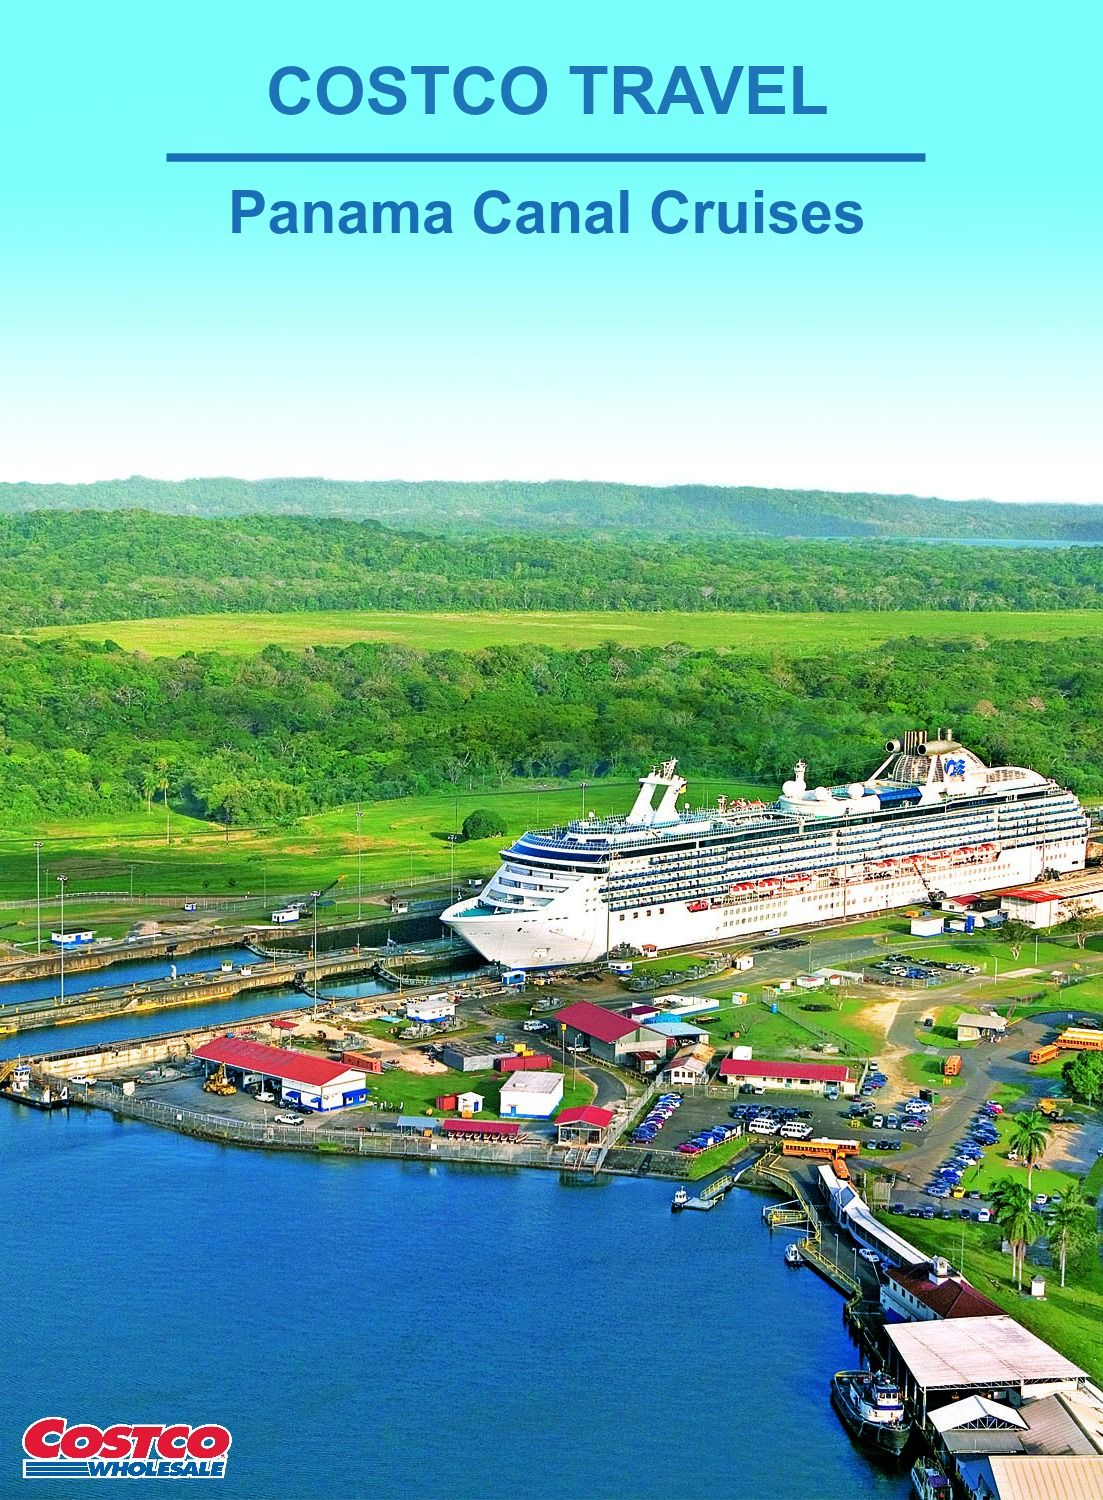 Panama Canal Cruises With Costco Travel Travel The World With A - Costoc travel